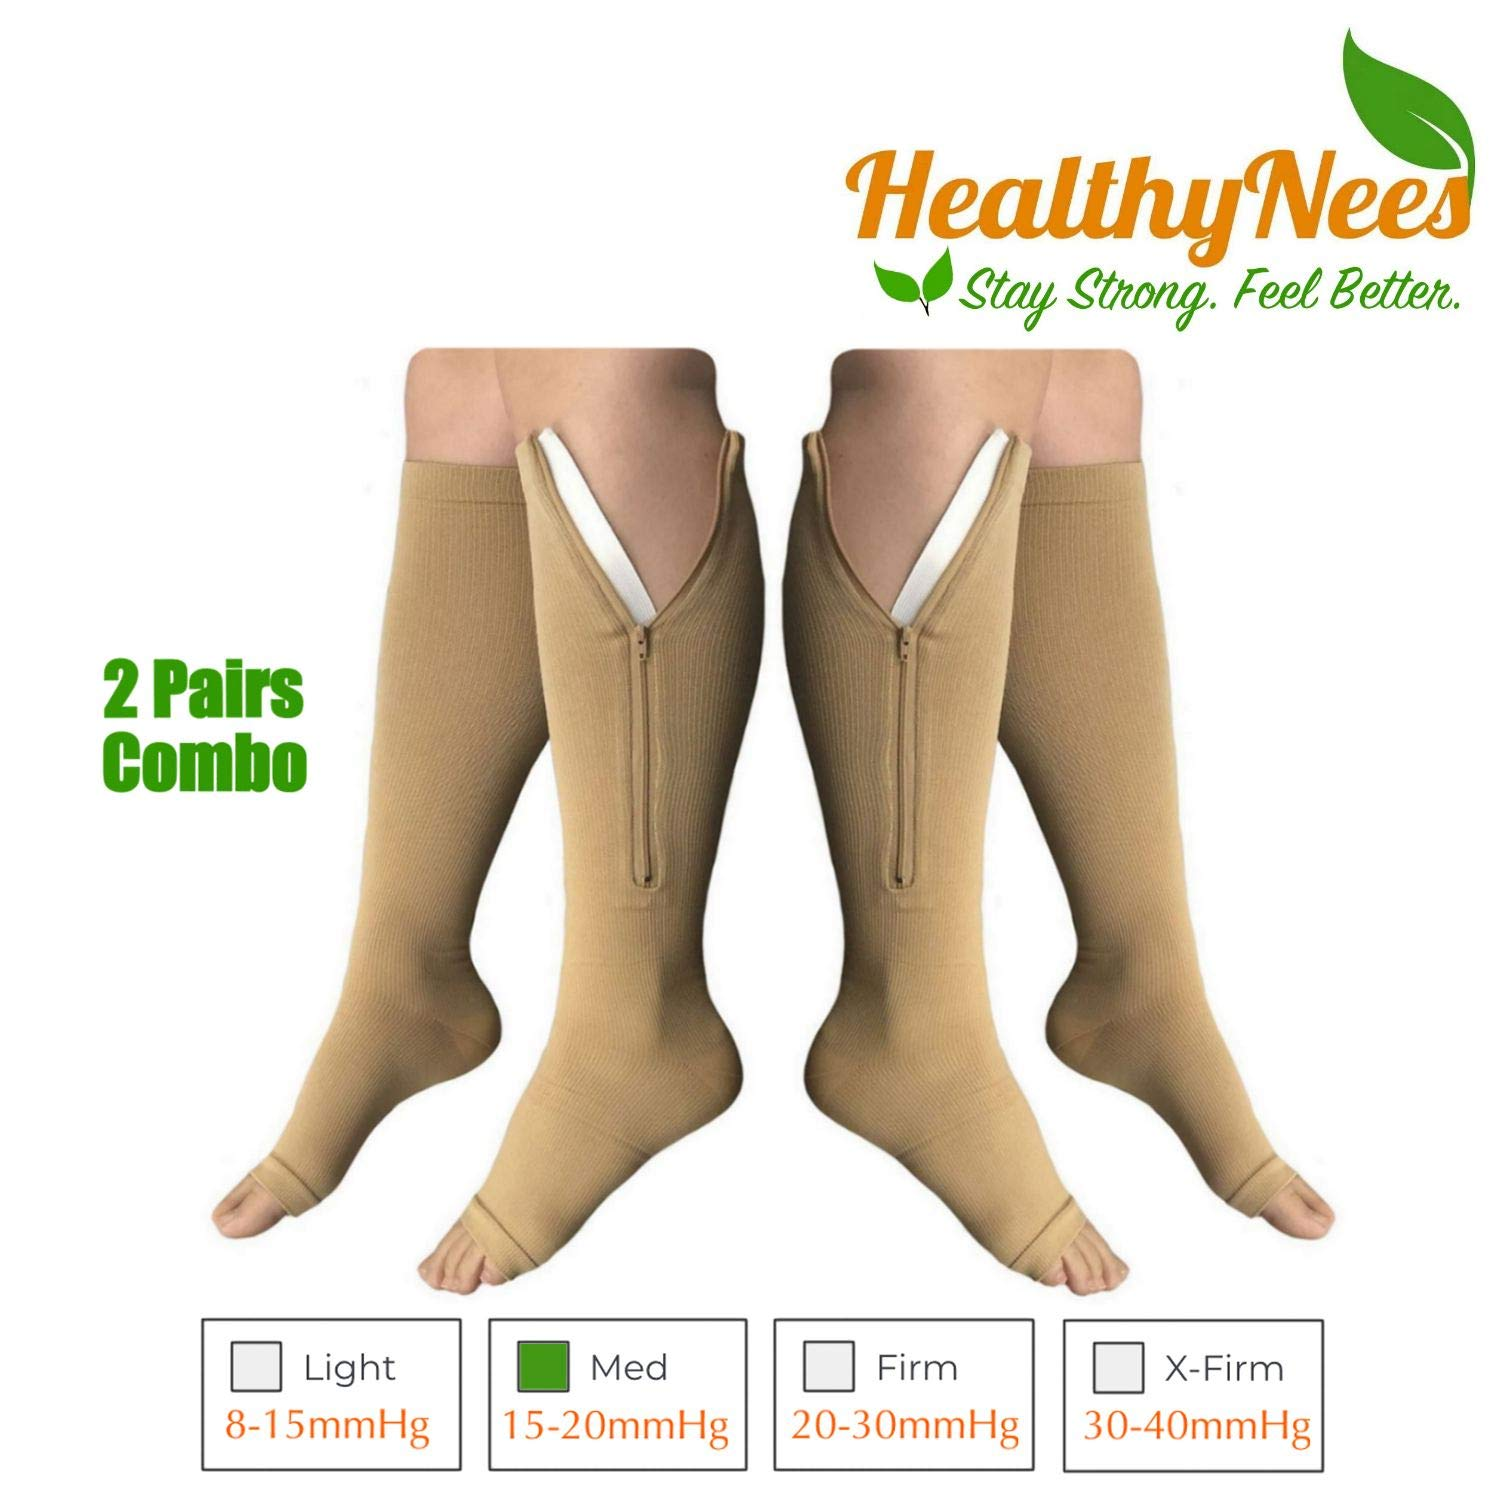 eed2795bbc0 Amazon.com  HealthyNees 2 Pairs Combo Zipper Compression Medical Grade Leg  Calf Relief Swelling Circulation Support Socks (2XL)  Health   Personal Care